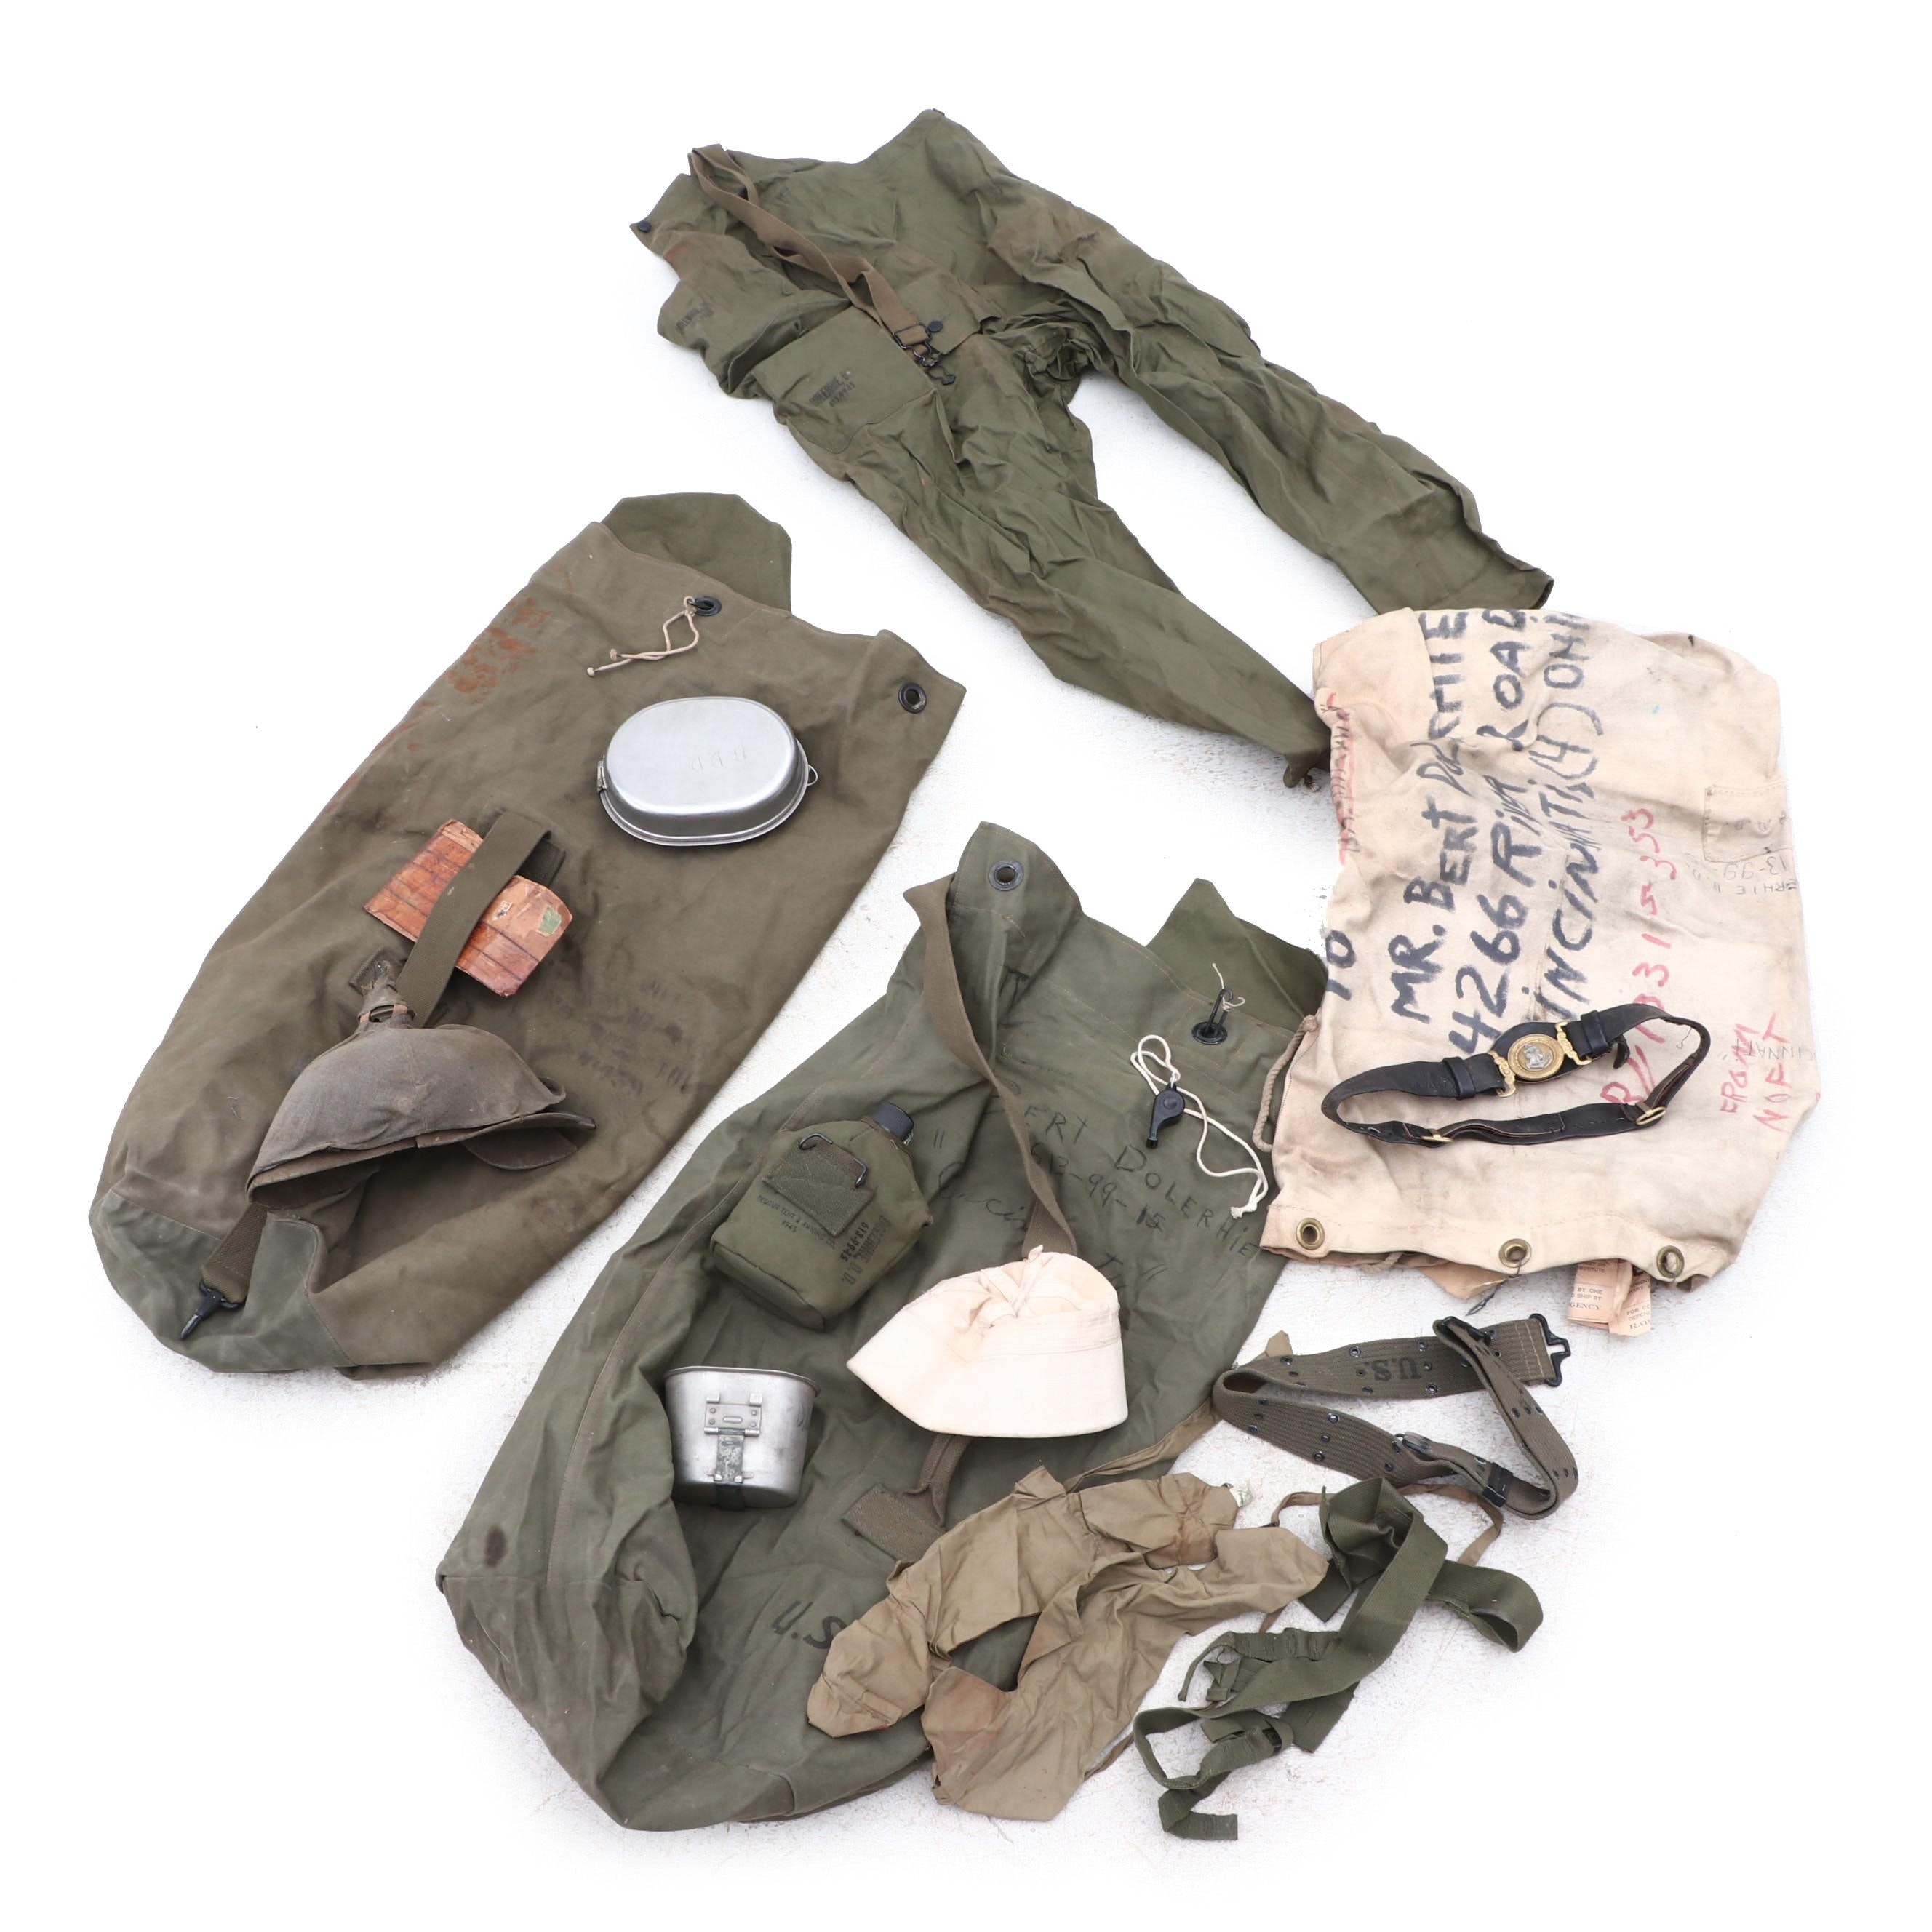 WWII Military Bags, Hats, Belts, Pants, Canteen, and More